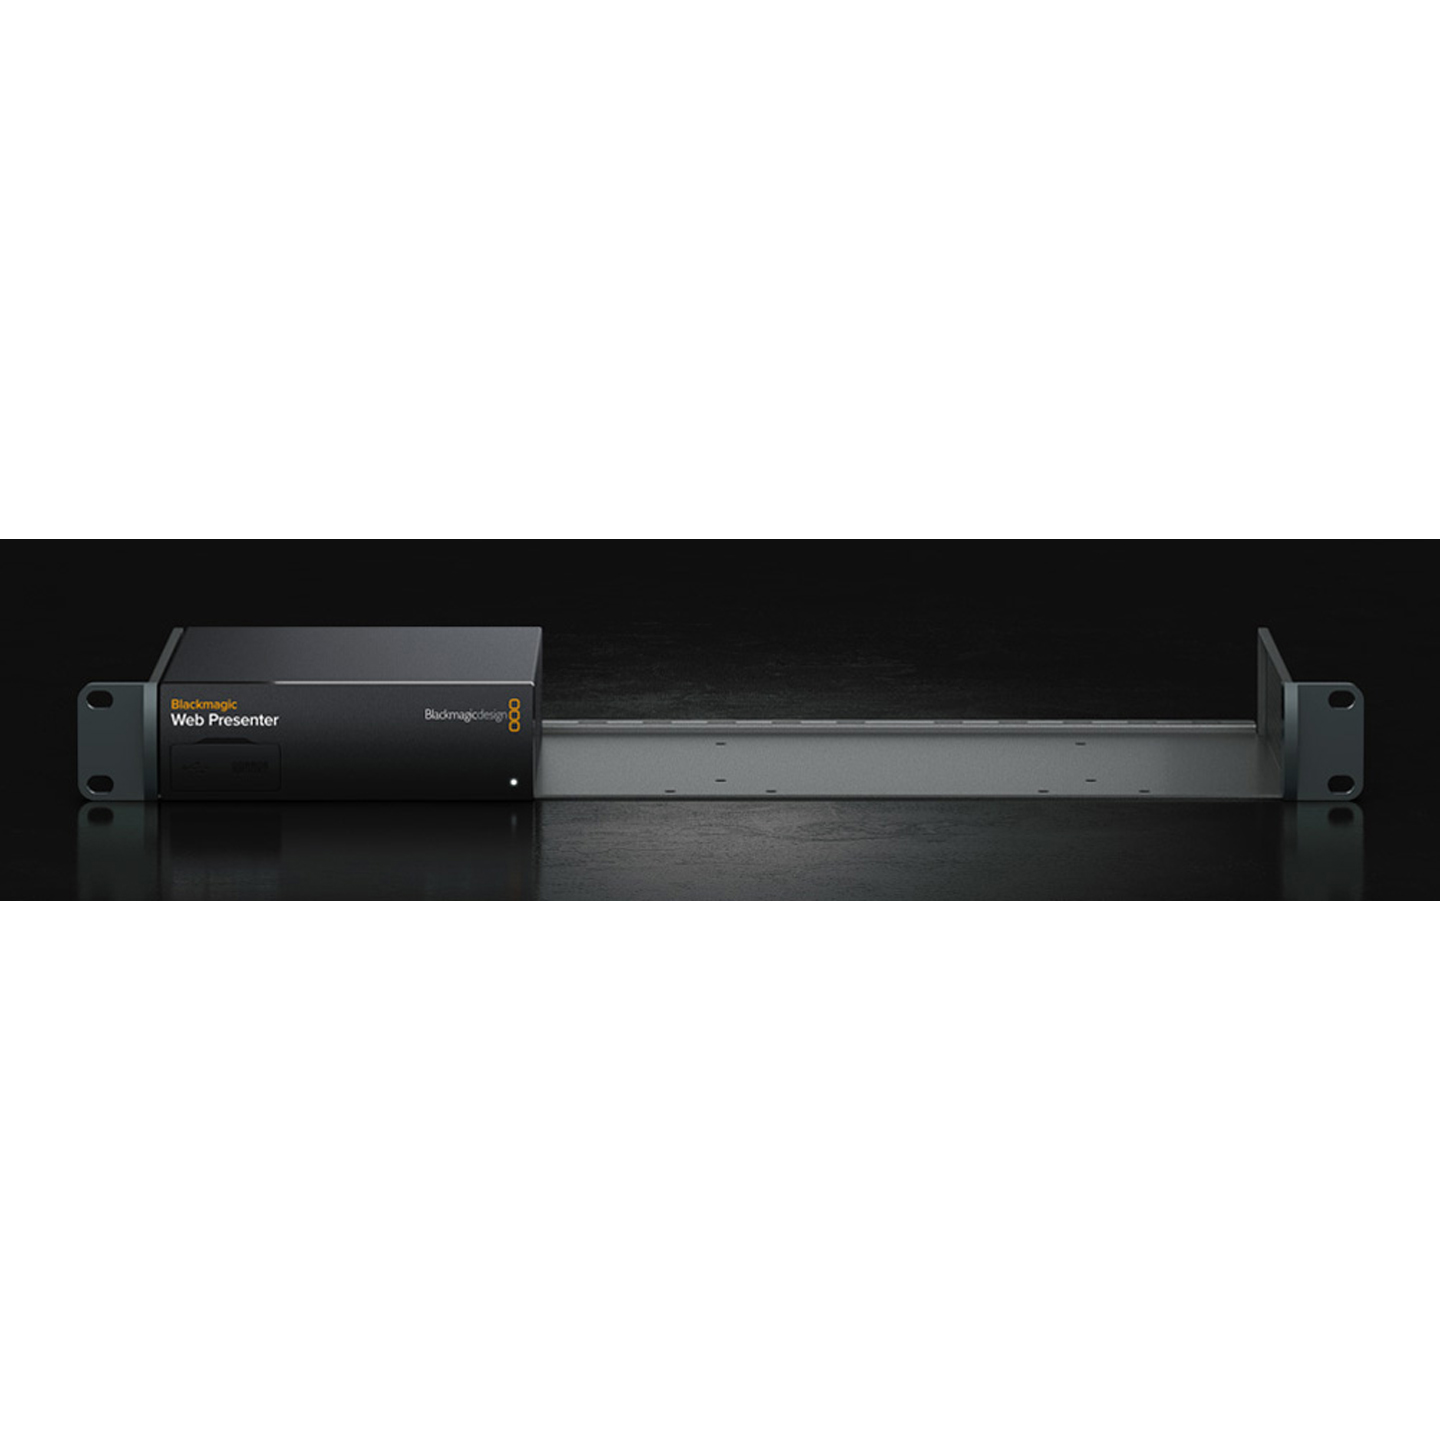 Blackmagic Design Web Presenter - Rack Mount